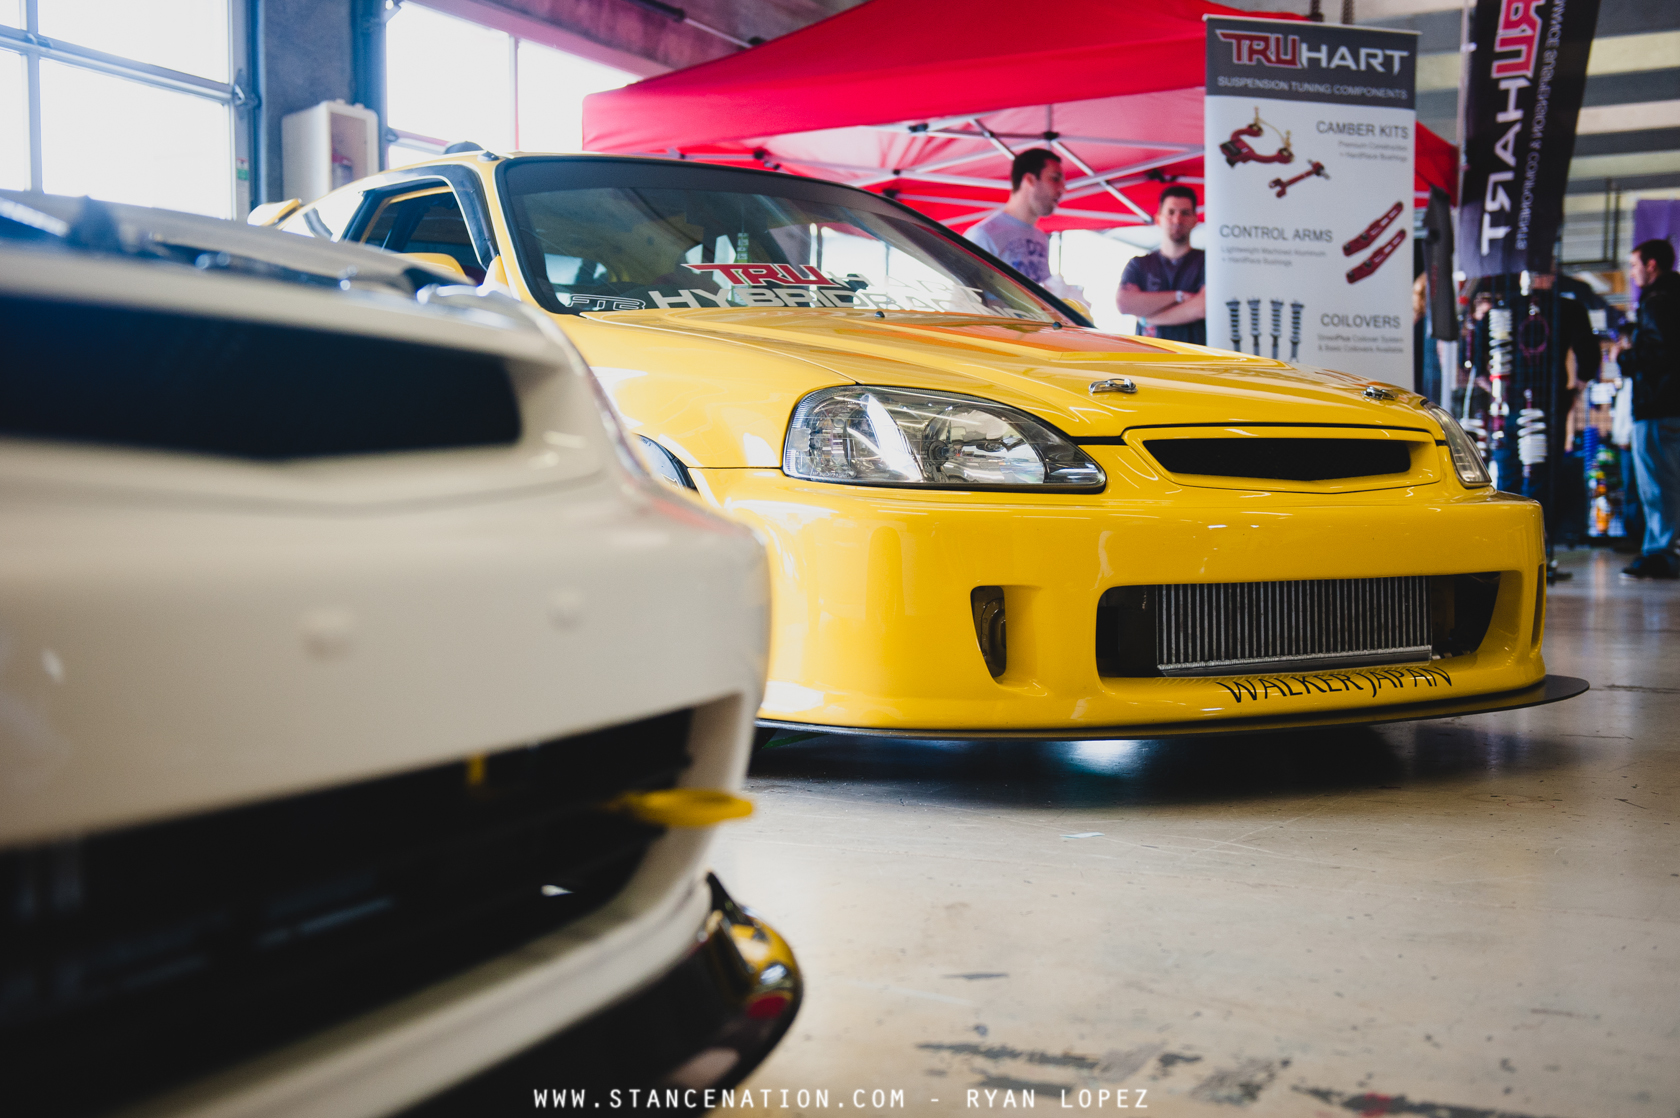 Import alliance summer meet 2015 photo coverage stancenation - Import Alliance 2014 Photo Coverage 33